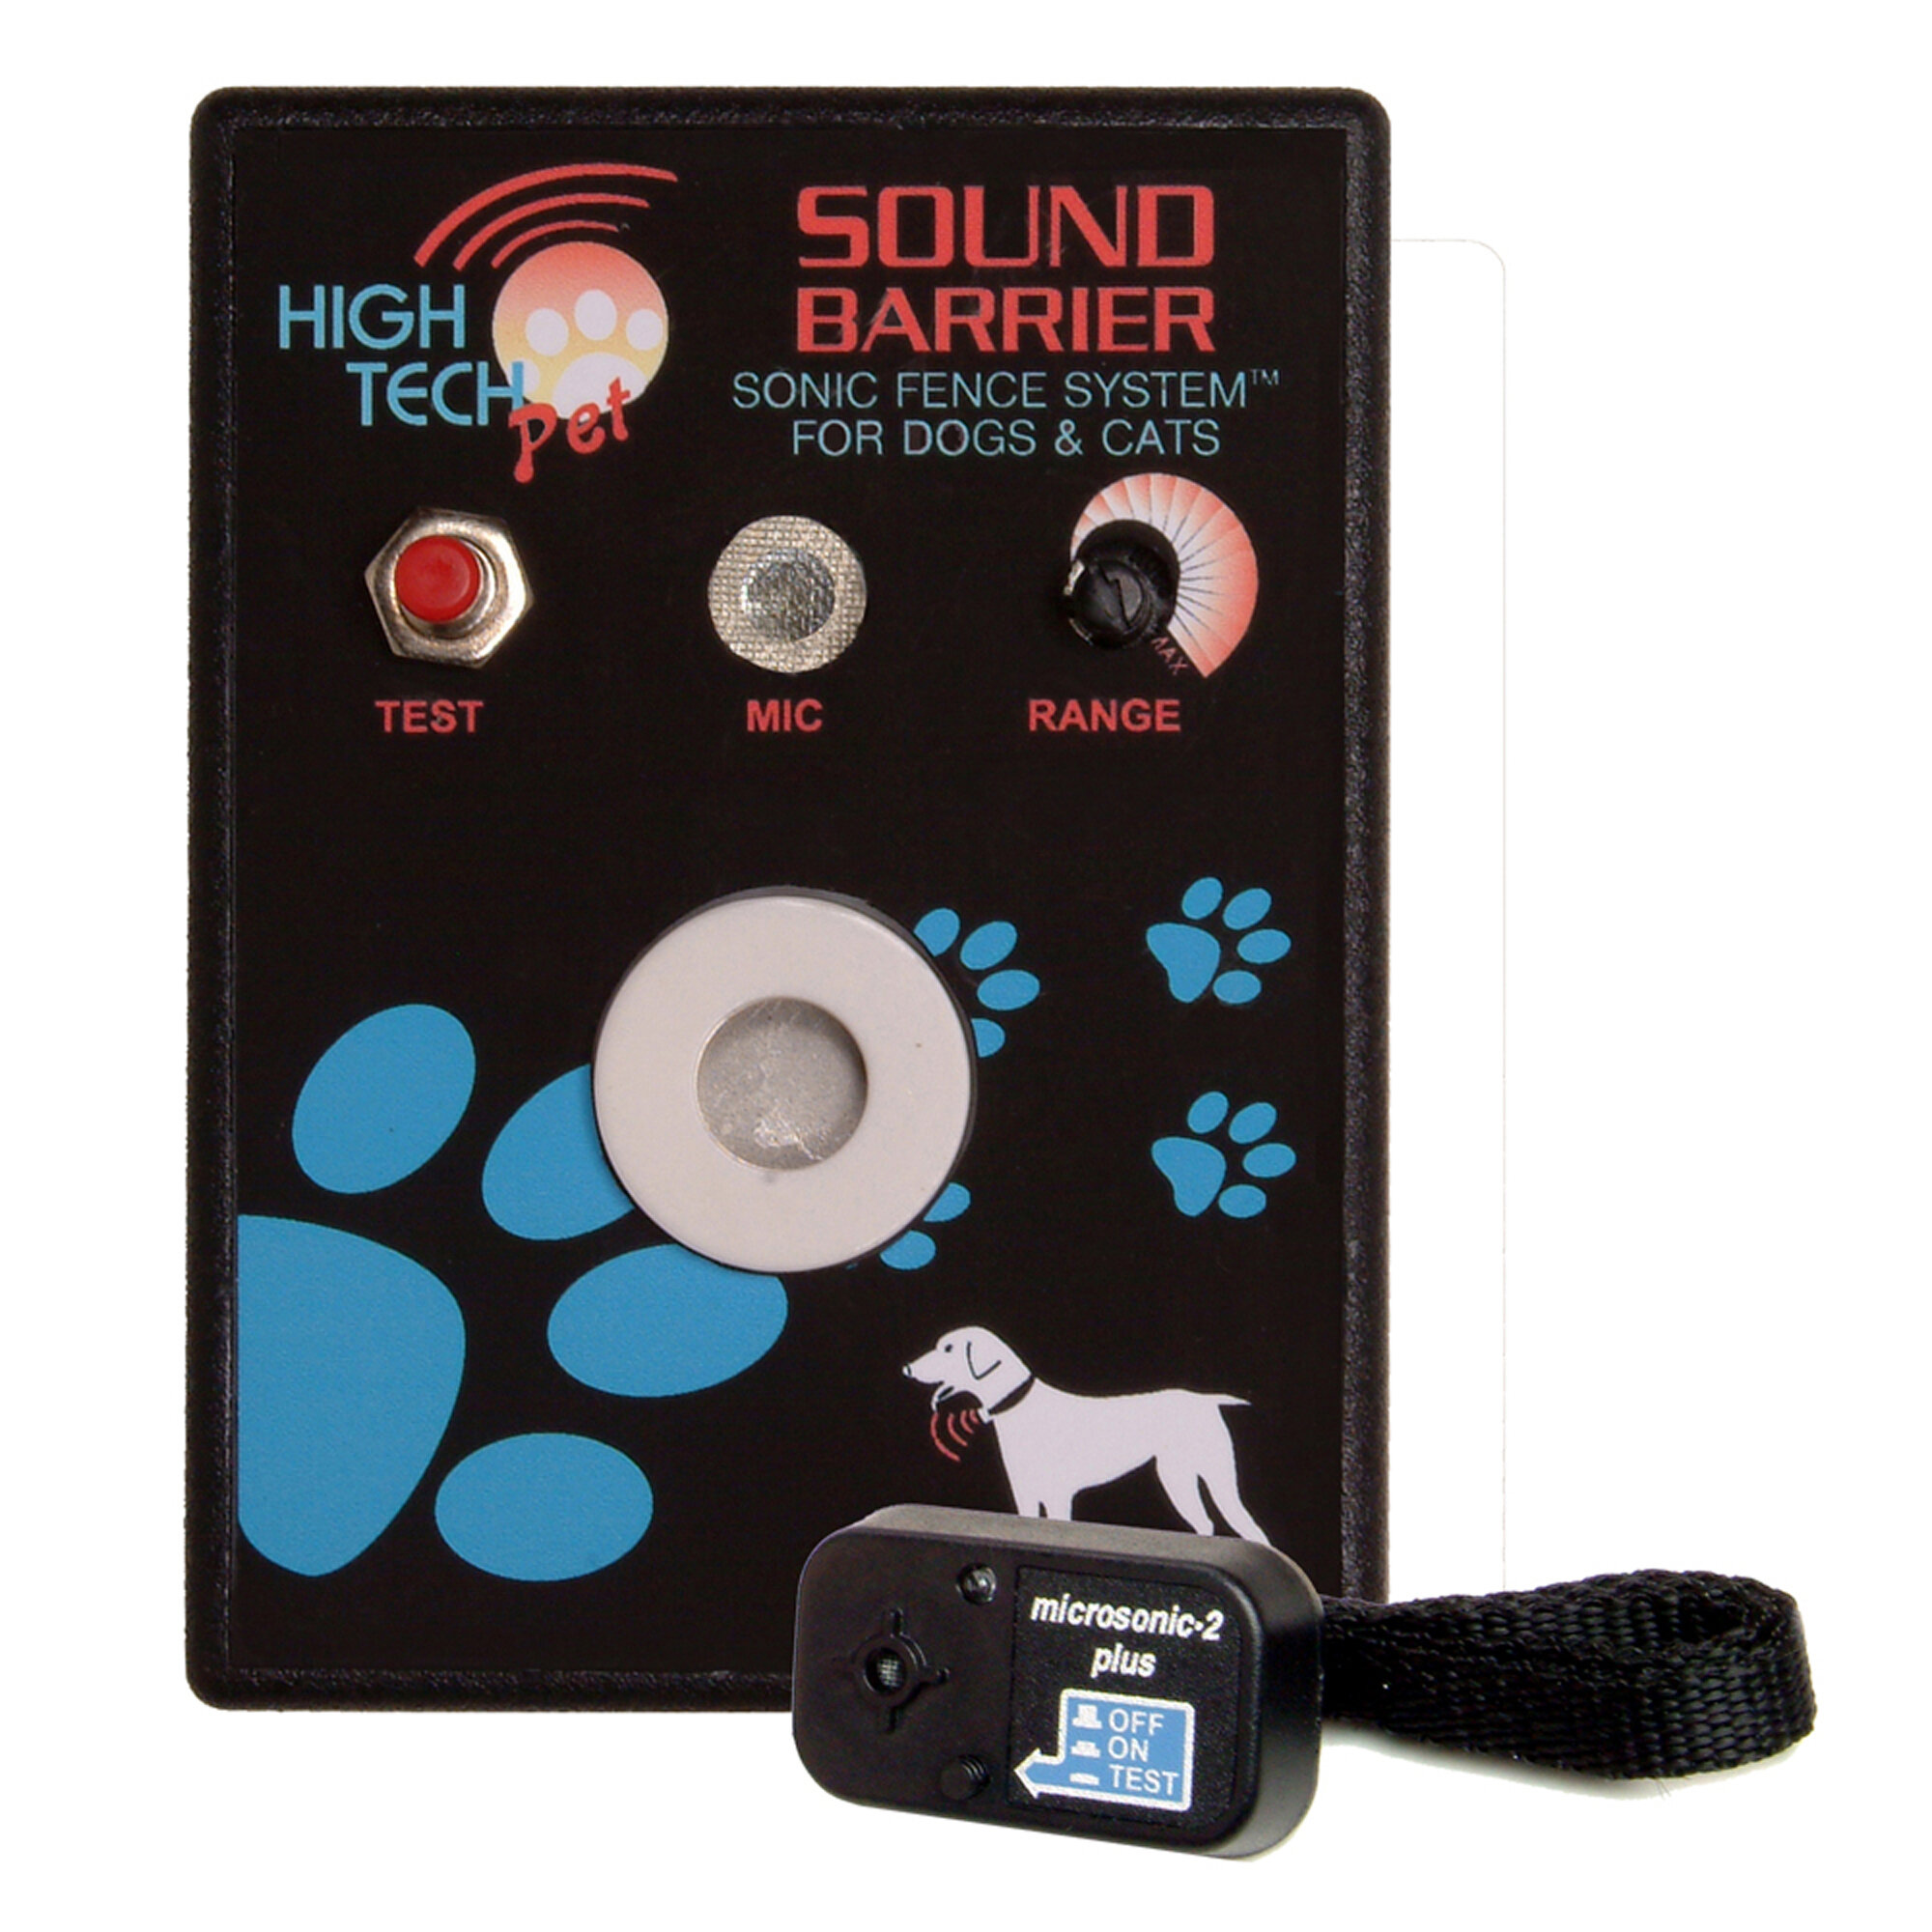 High Tech Pet Sound Barrier Indoor Sonic Pet Electric Fence ...